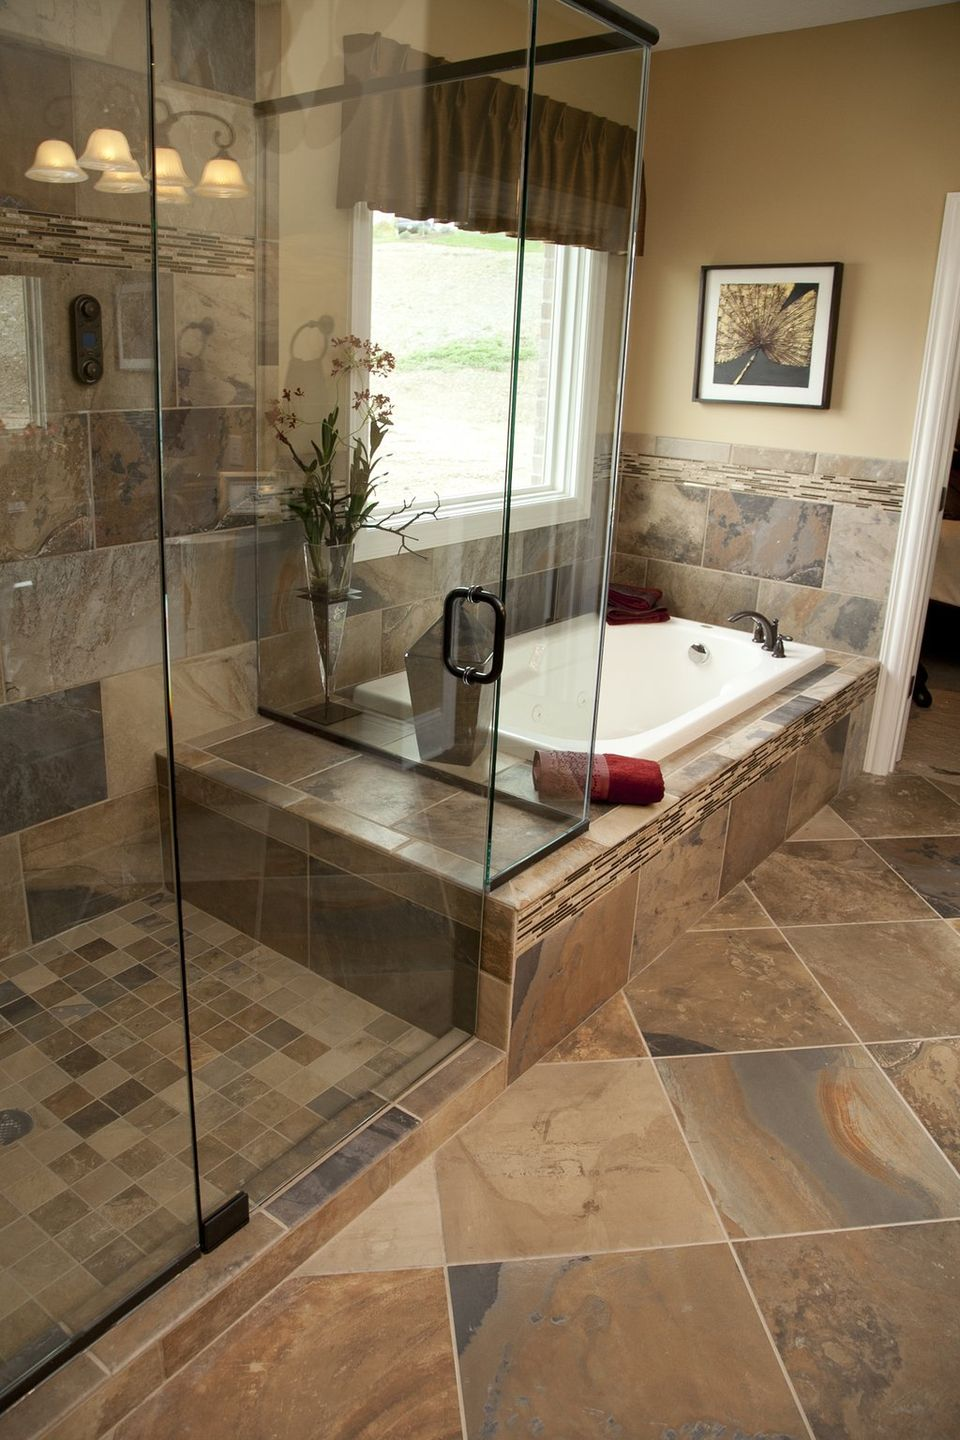 Bathroom Tile Ideas Of 33 Stunning Pictures And Ideas Of Natural Stone Bathroom